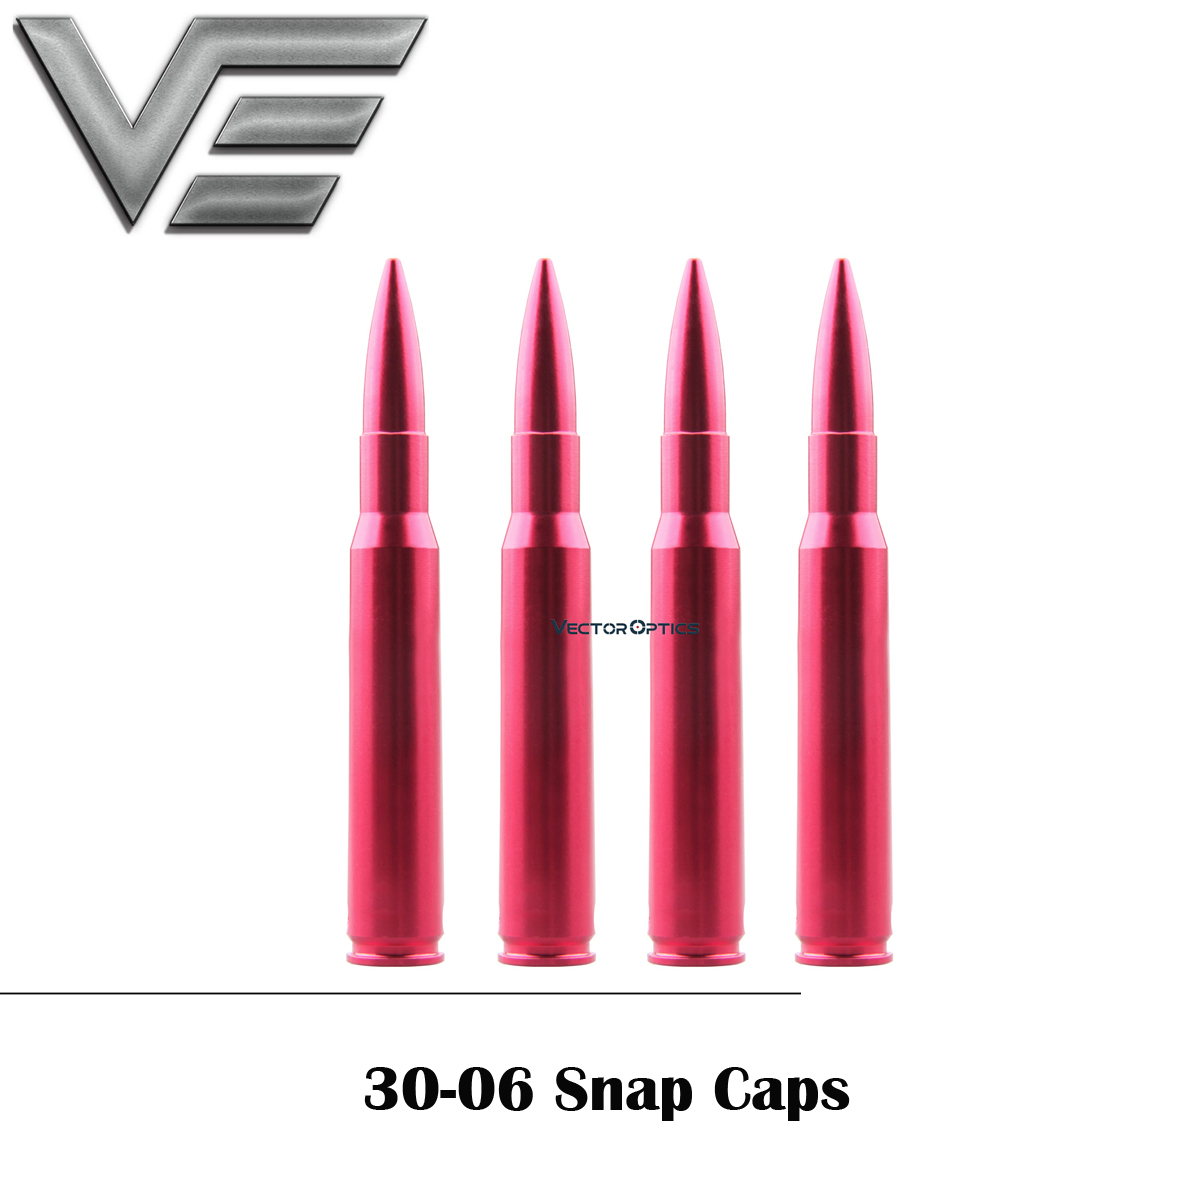 Vector Optics 30-06 Lapua Dry Fires Snap Caps For Training 4pcs Per Pack W/ Sling For Rifle Calibers Safety Training Round Metal